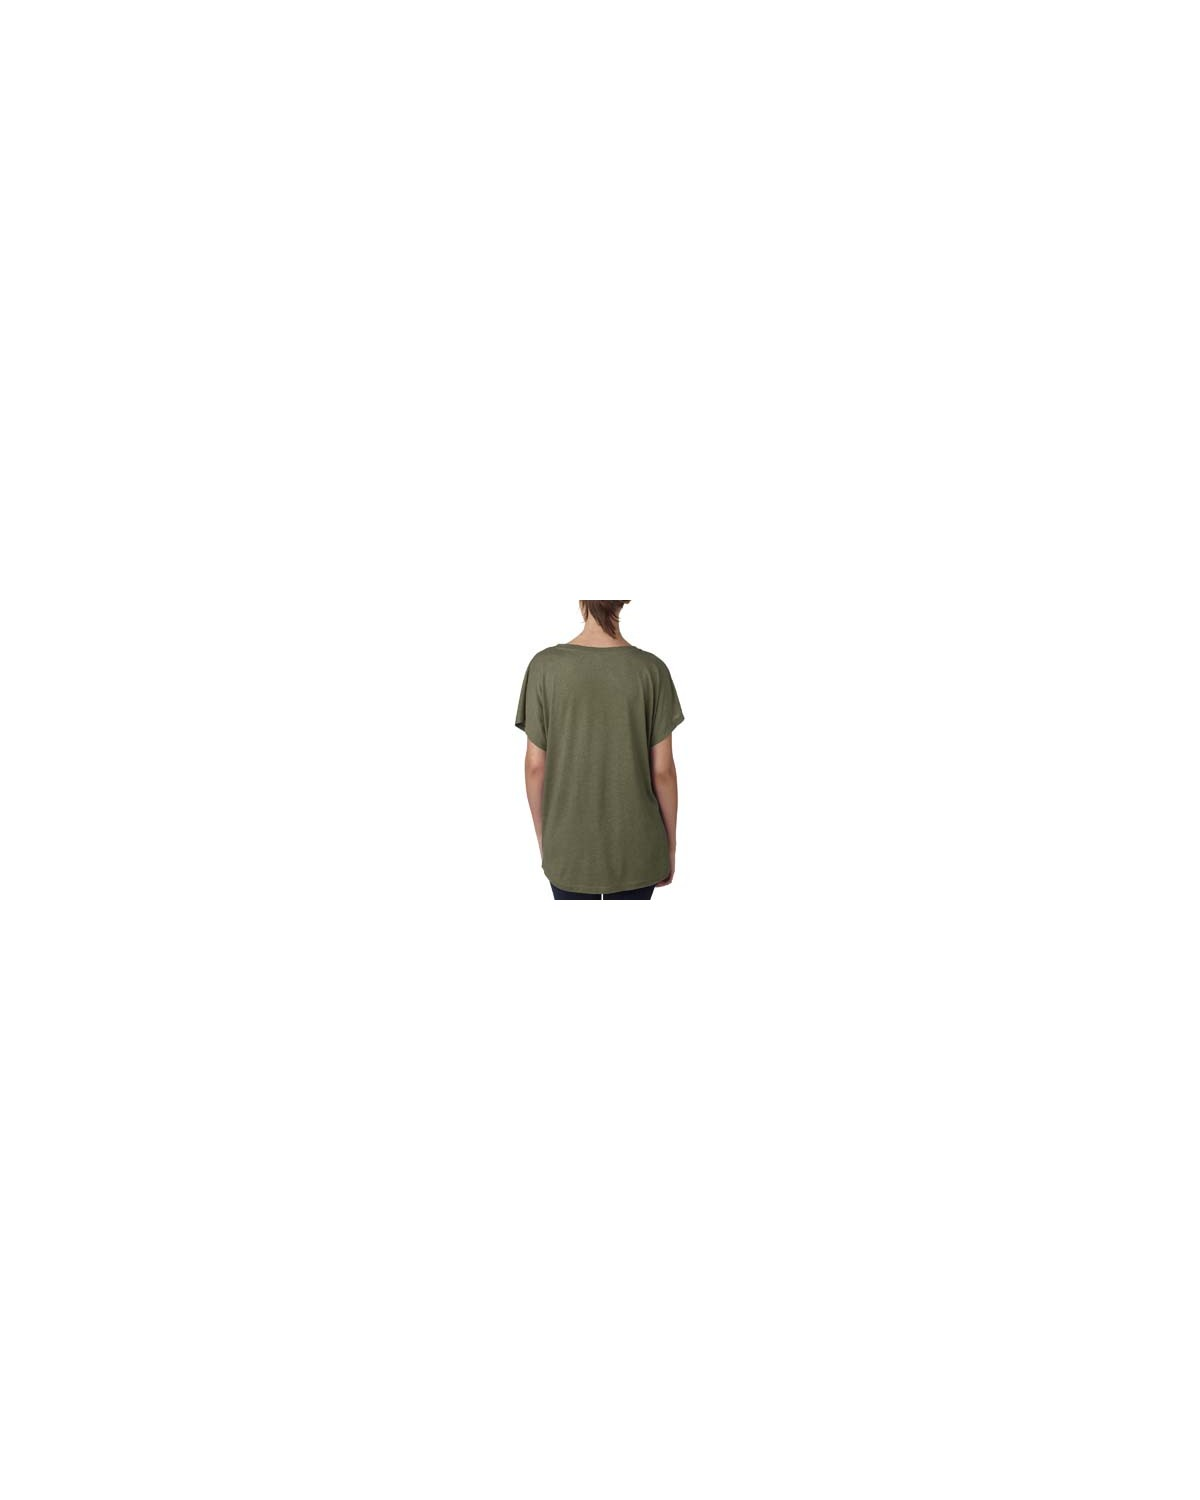 6760 Next Level MILITARY GREEN